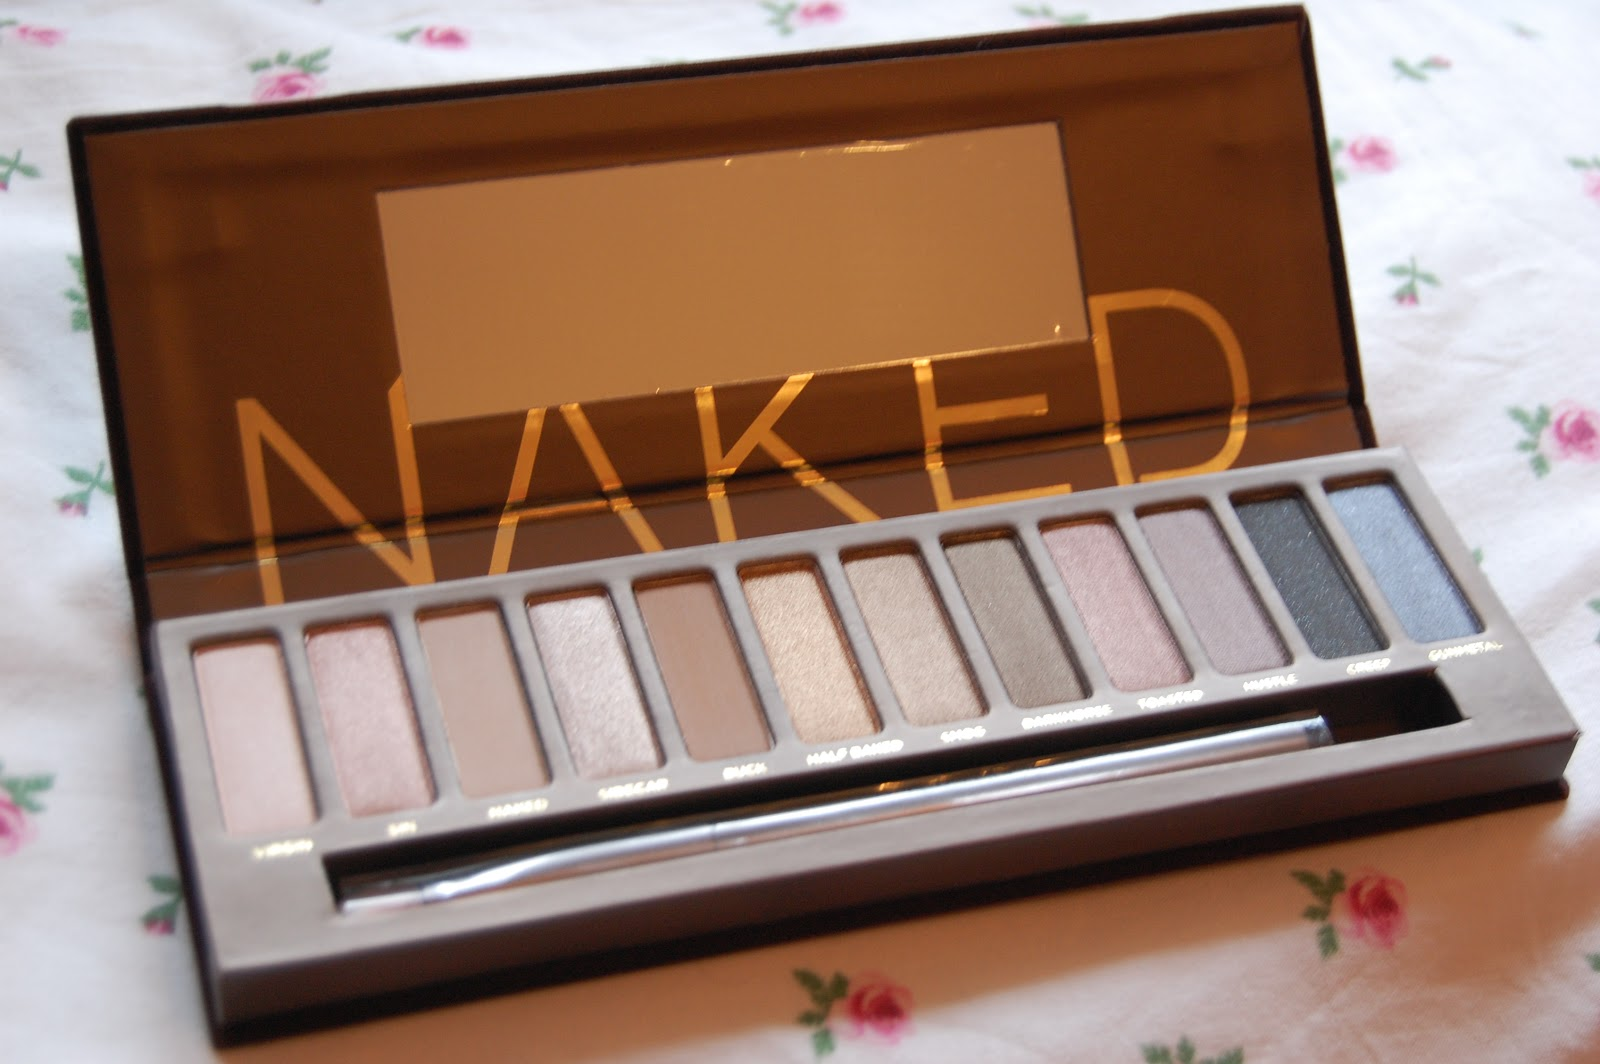 palette Urban looks naked decay